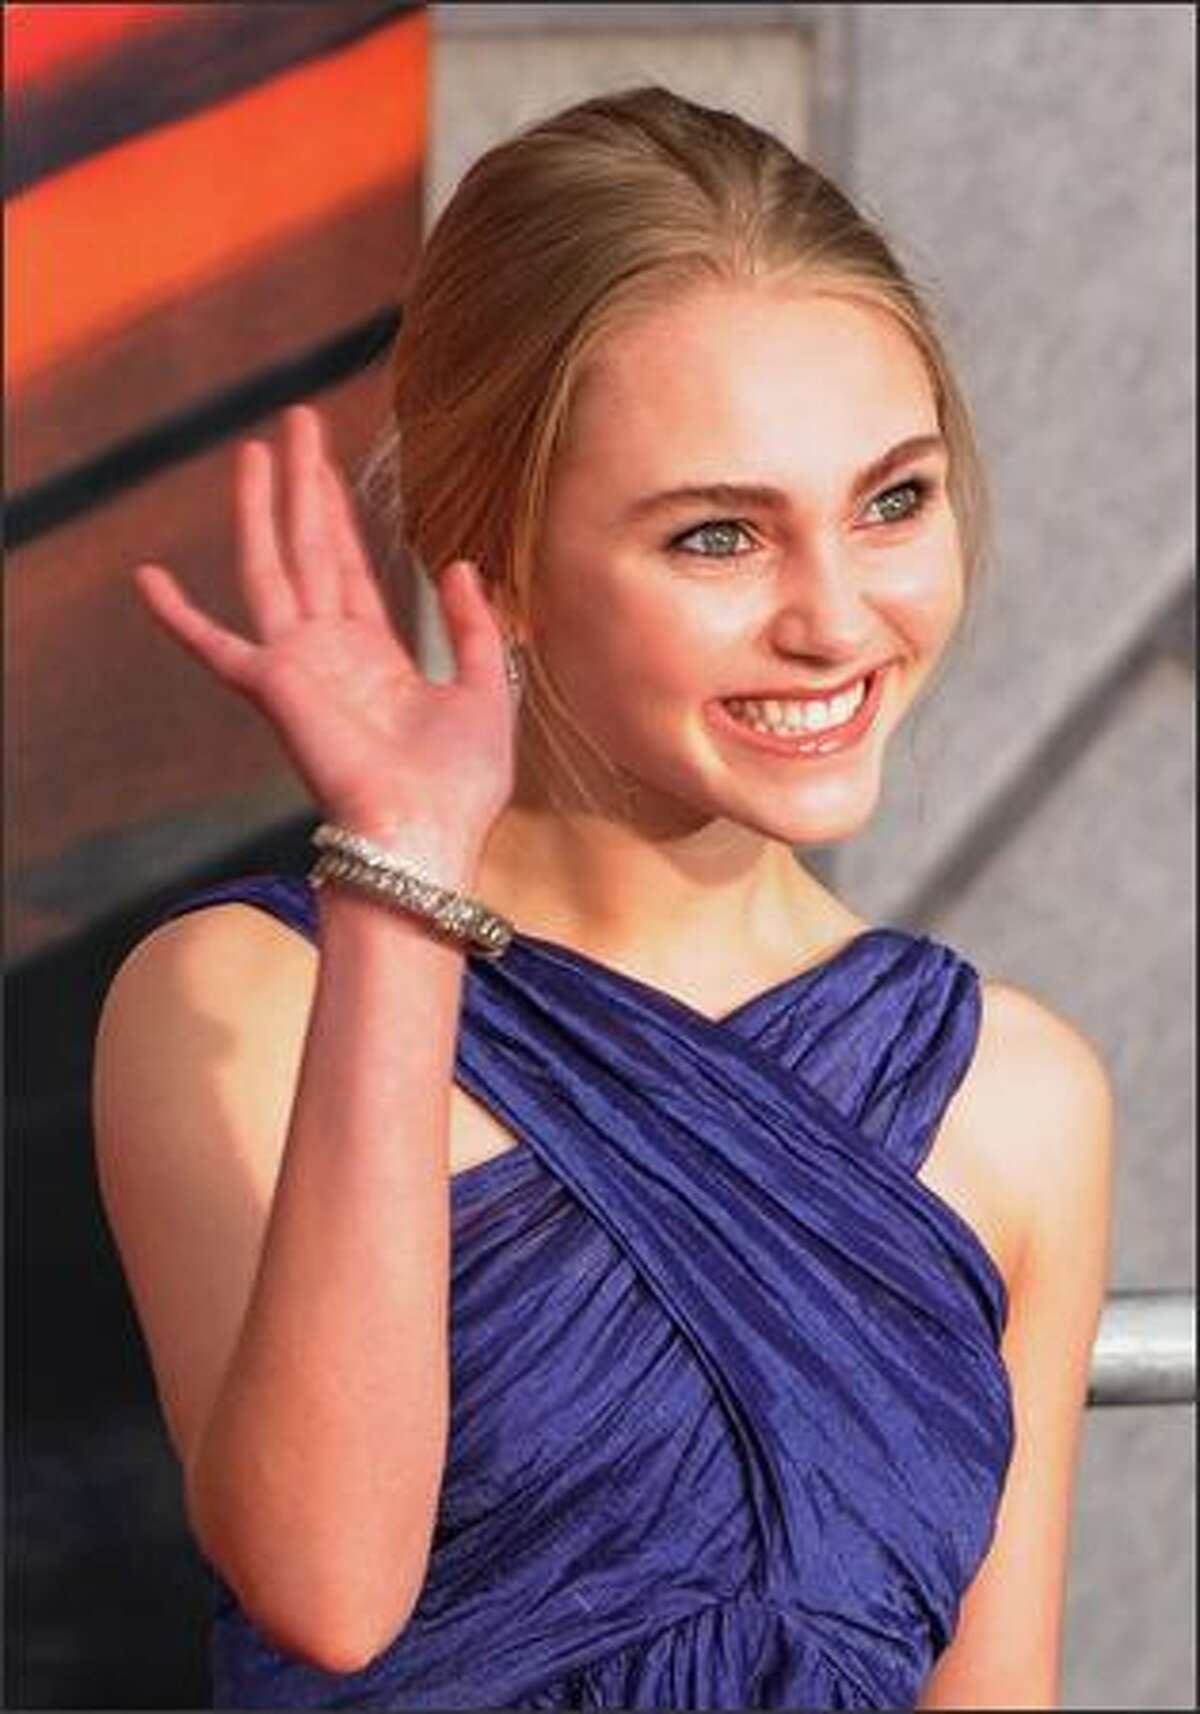 Actor AnnaSophia Robb pose for photos as she arrives for the world premiere of the Disney film